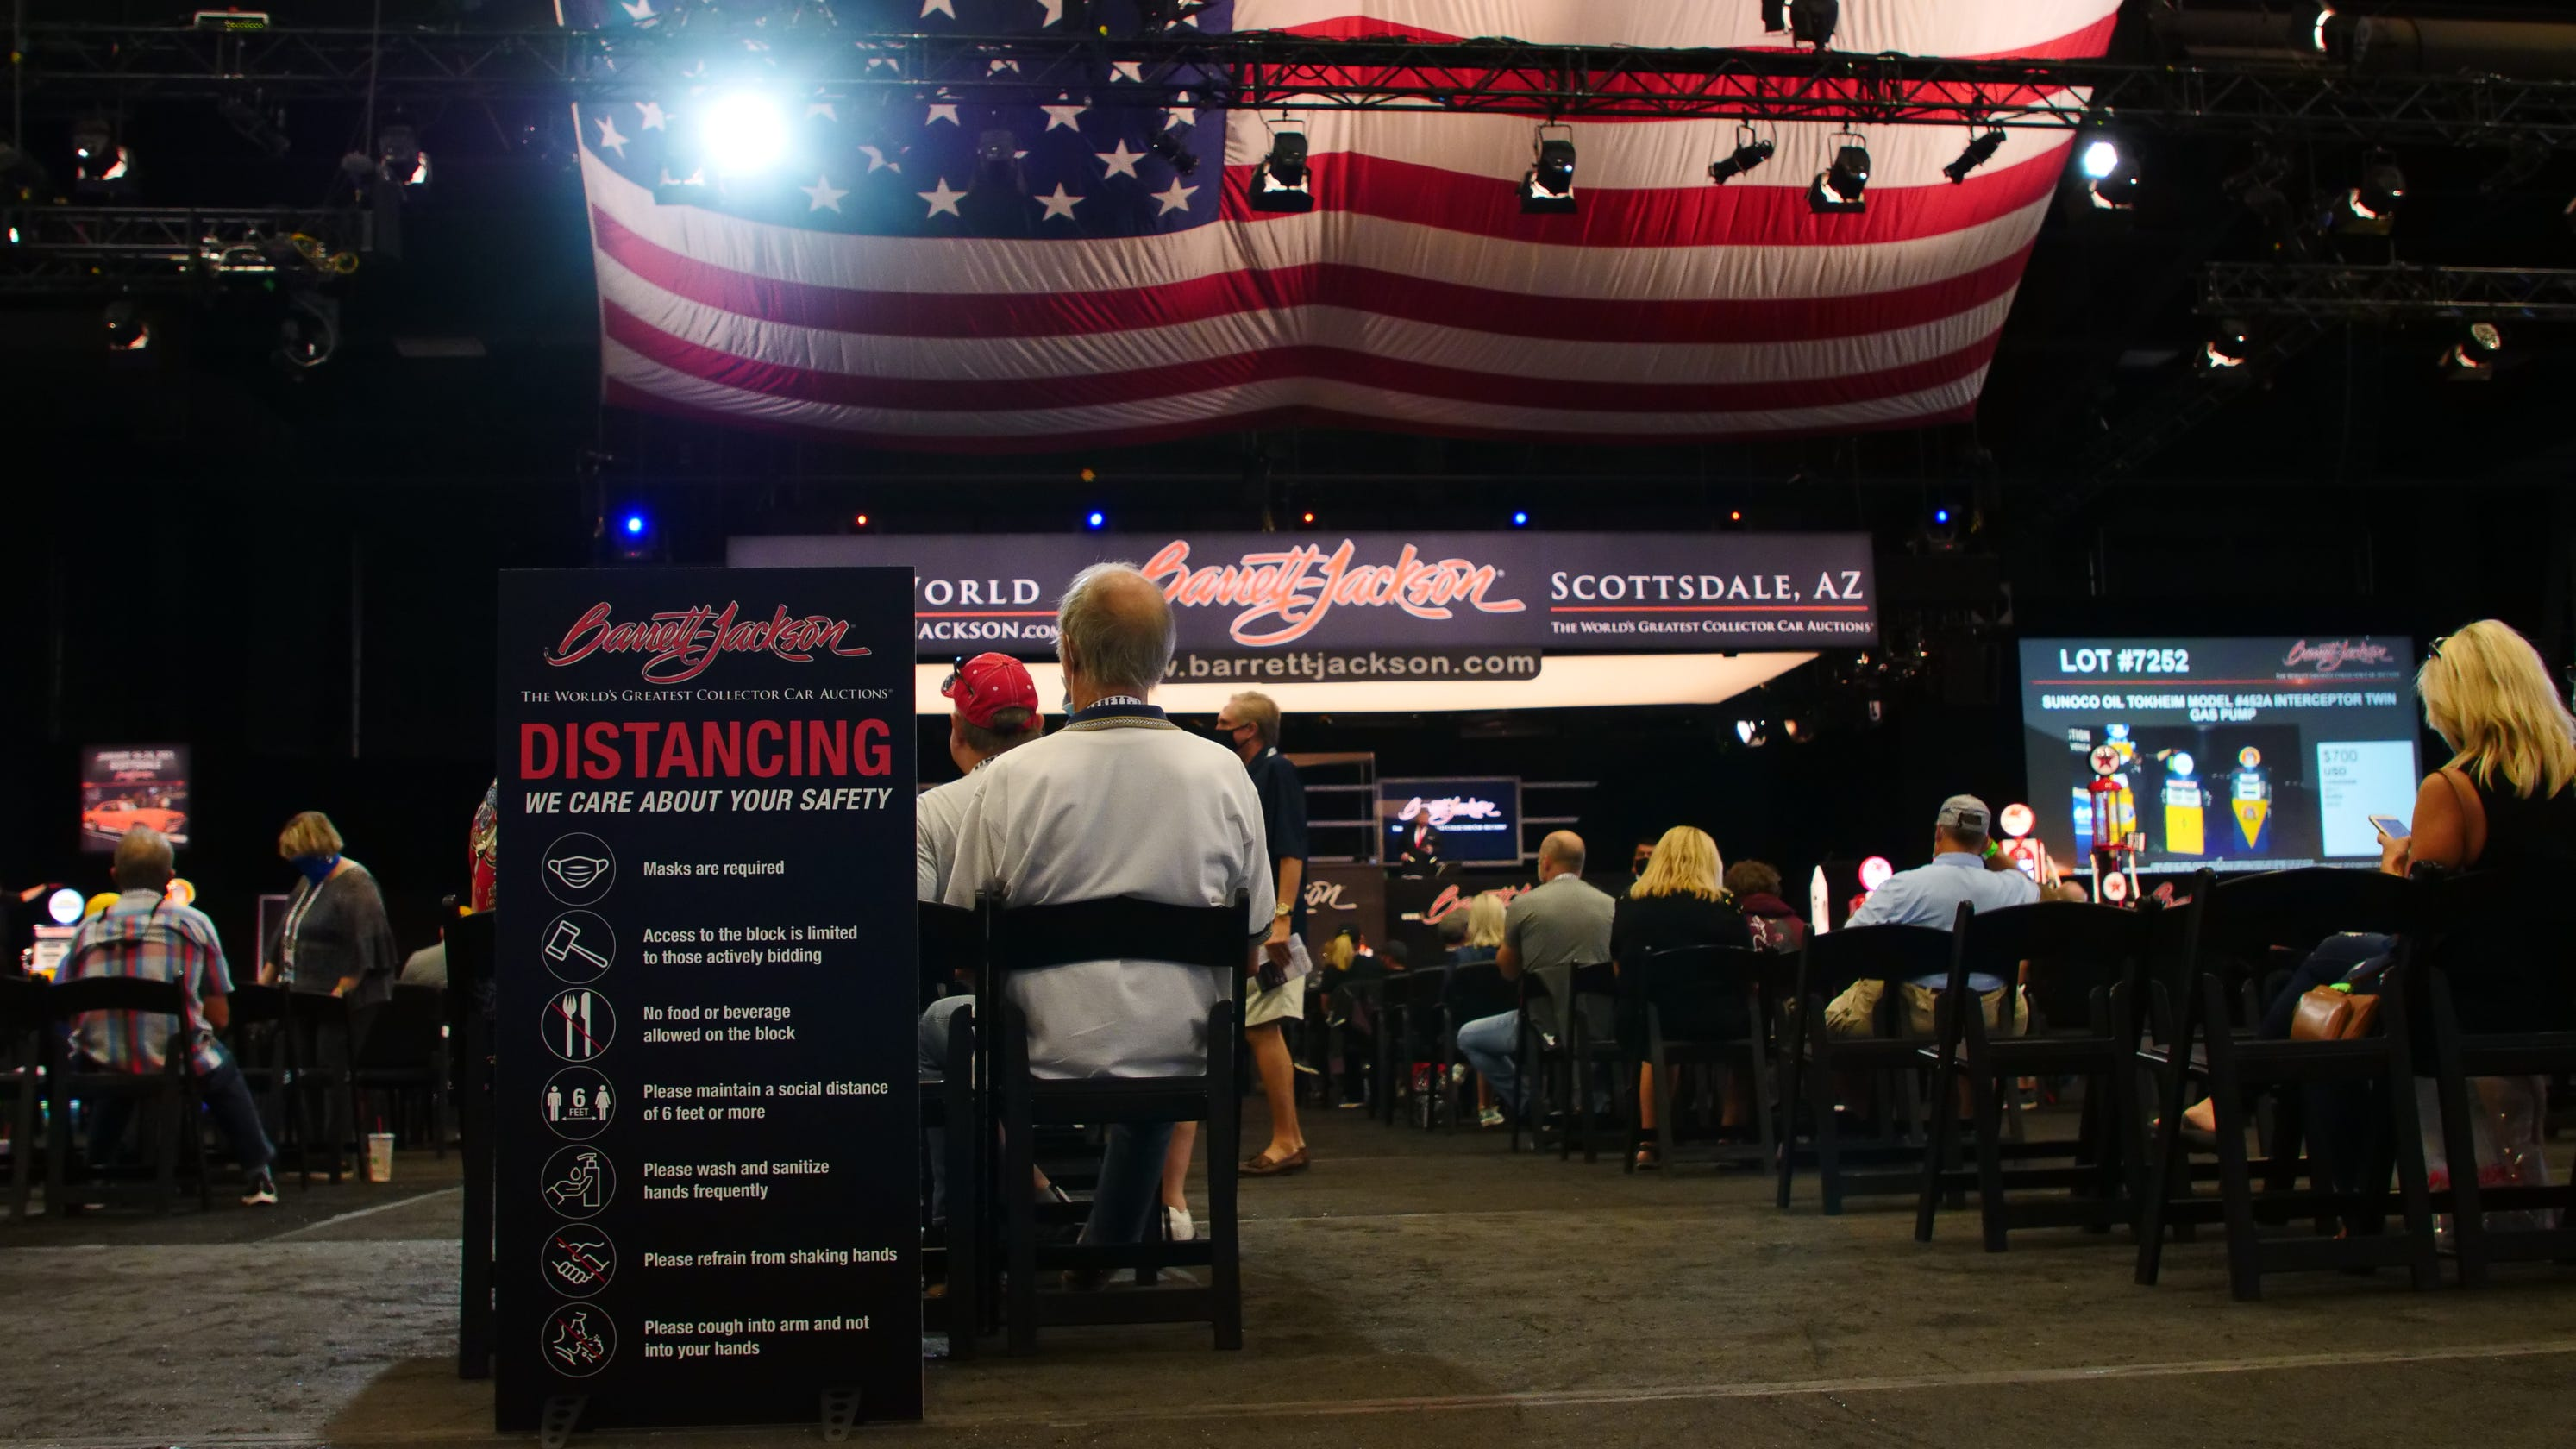 Barrett-Jackson and other large events resume in Scottsdale, but COVID-19 has brought changes